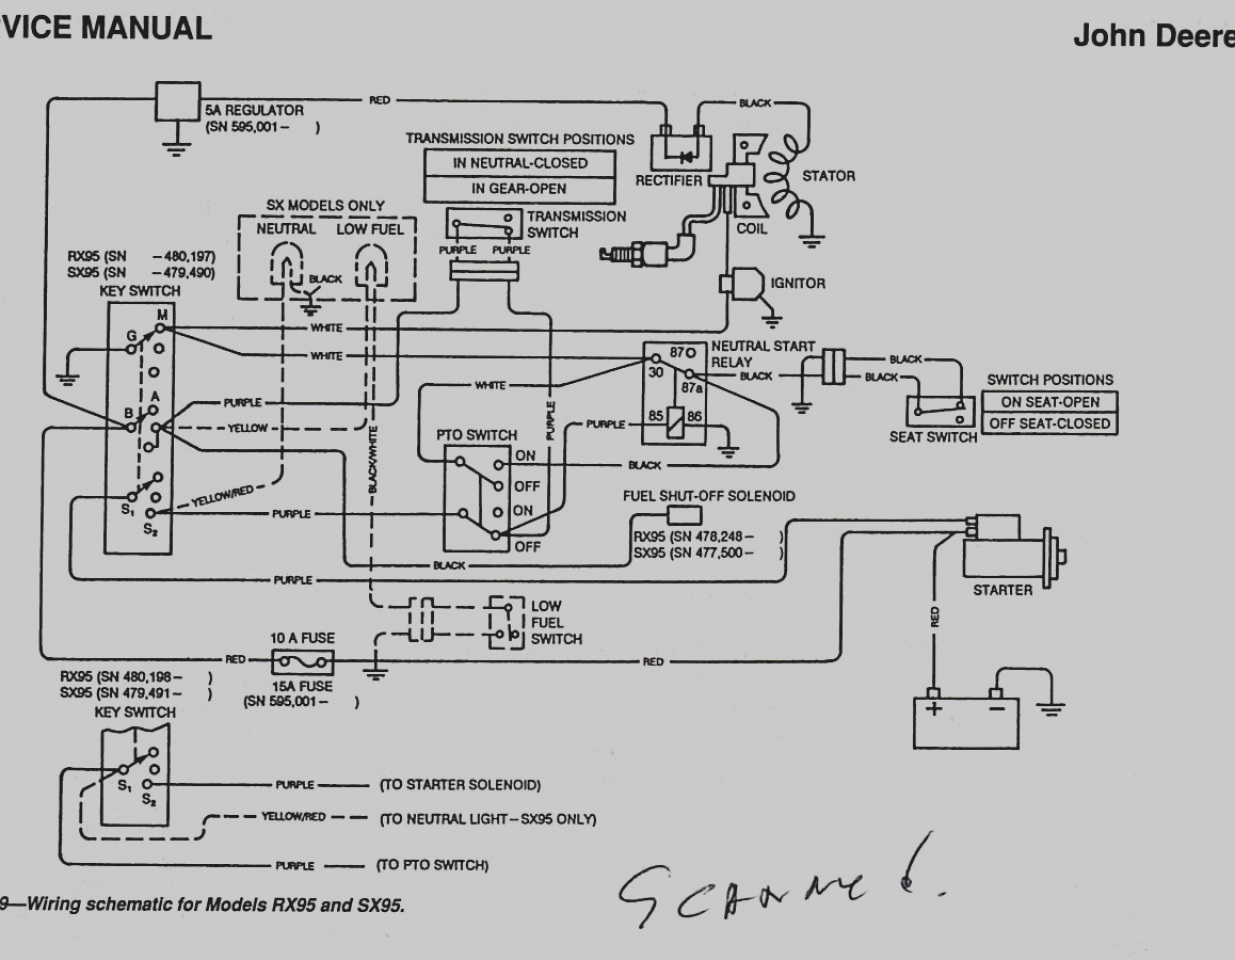 [SCHEMATICS_4HG]  DIAGRAM] 1020 John Deere Wiring Harness Diagram FULL Version HD Quality  Harness Diagram - WEBAPPDATABASE.K-DANSE.FR | John Deere X300 Fuse Box Diagram |  | K-danse.fr